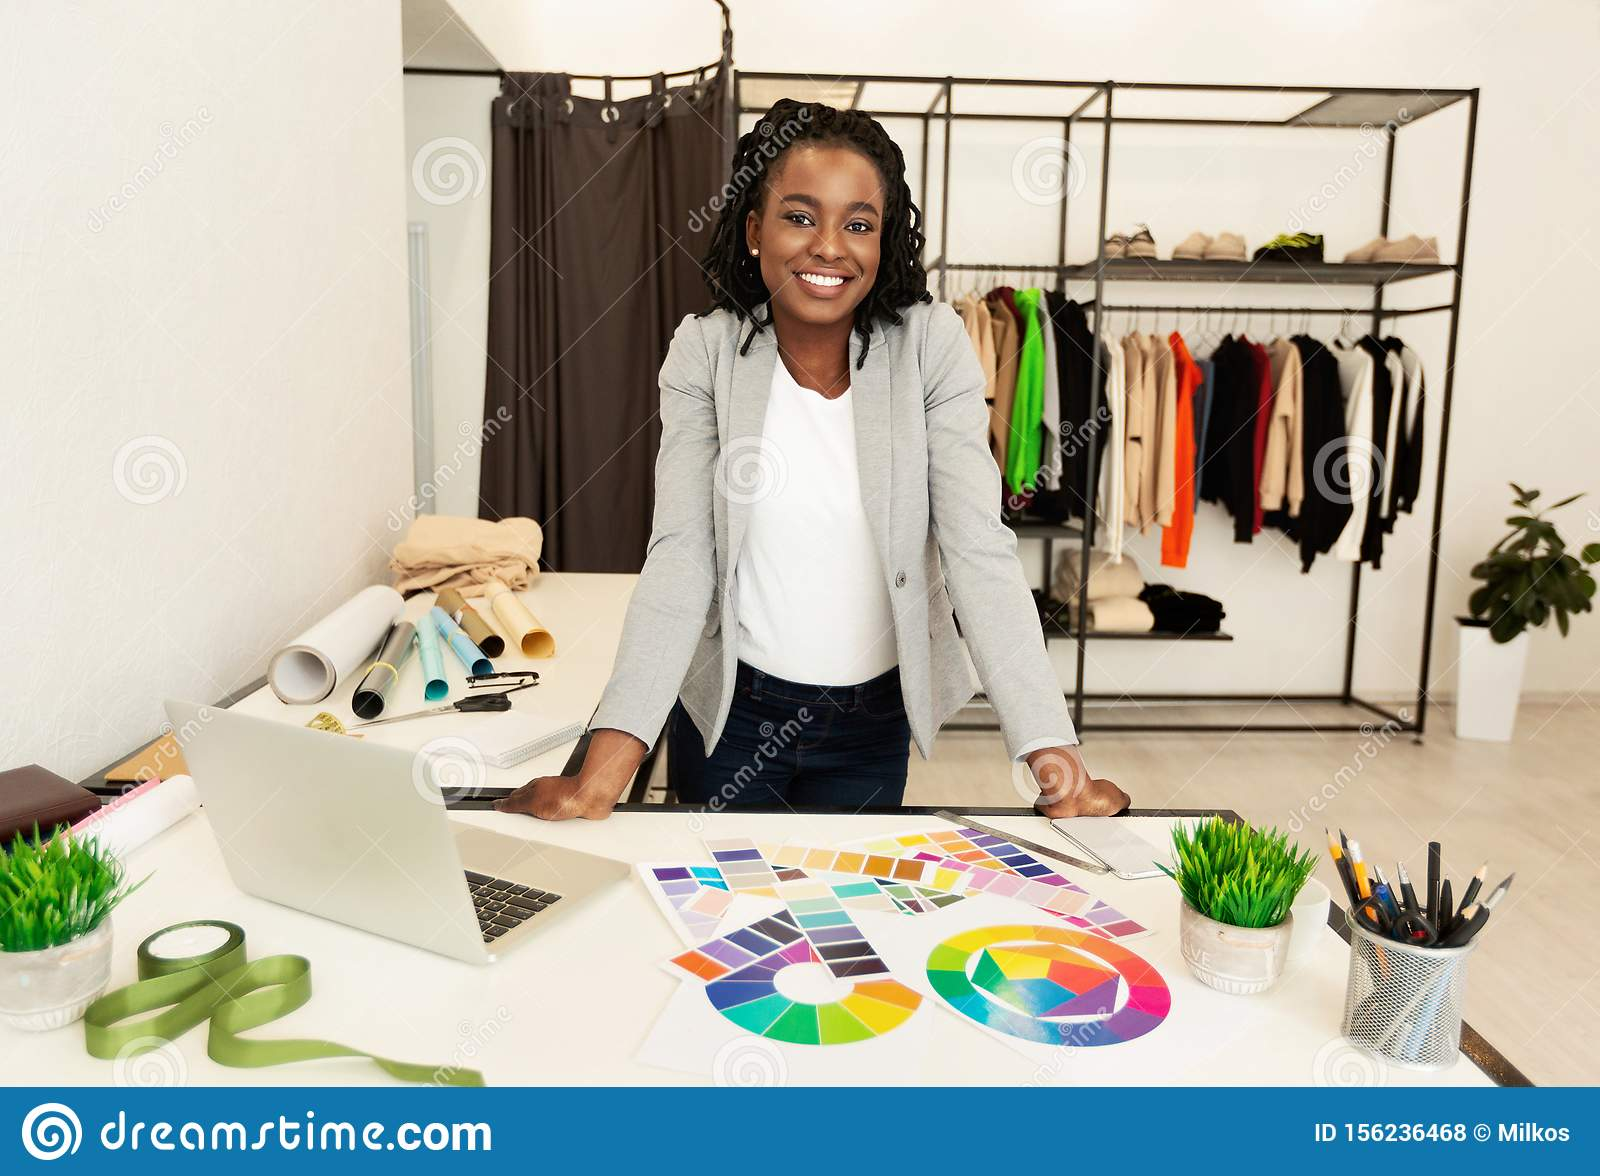 Cheerful Black Fashion Designer Smiling Working In Studio Stock Photo Image Of Fabric Girl 156236468